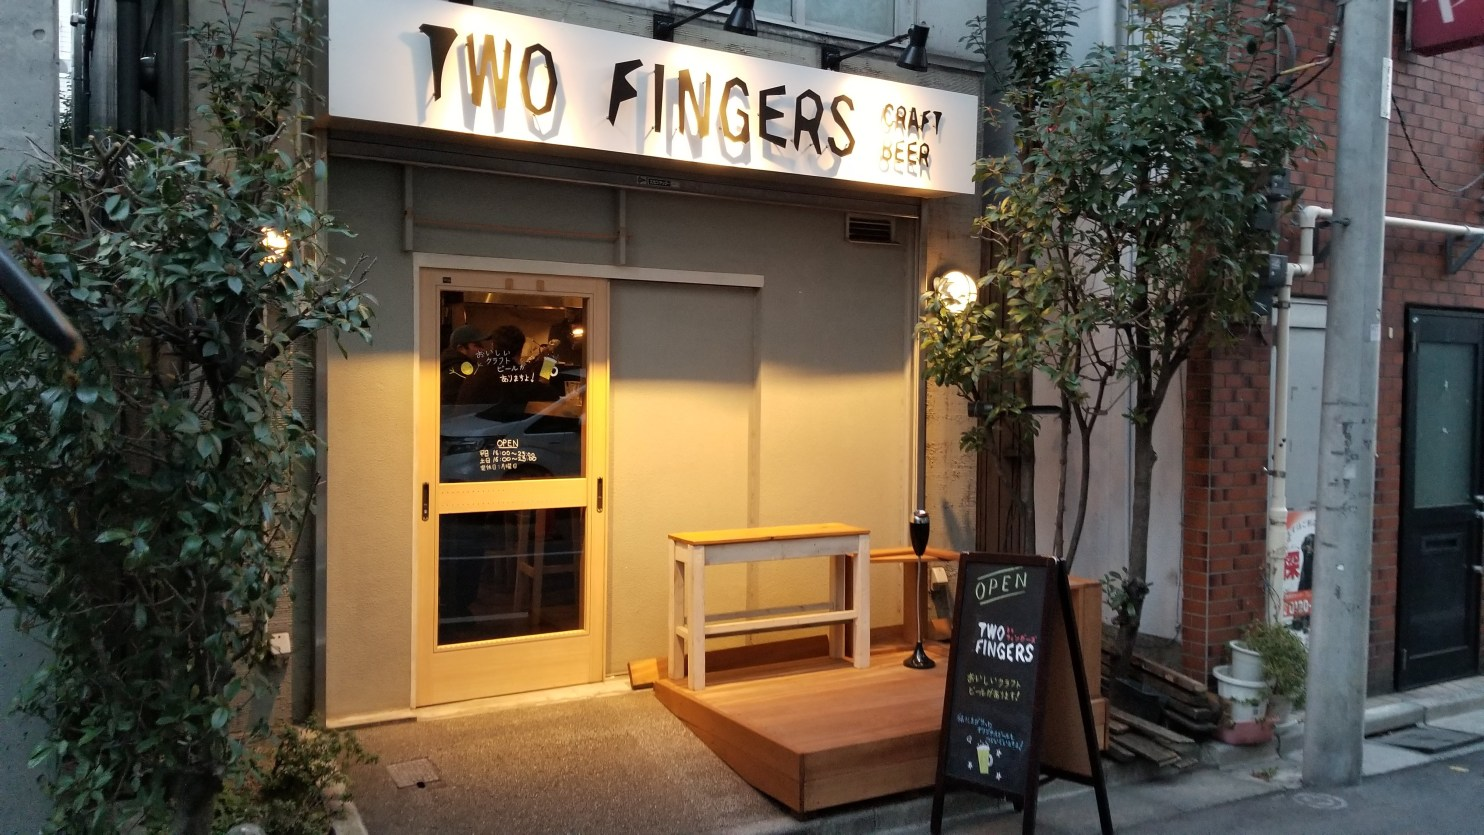 Two Fingers Craft Beer Front ・トゥー・フィンガーズ・クラフトビア店前